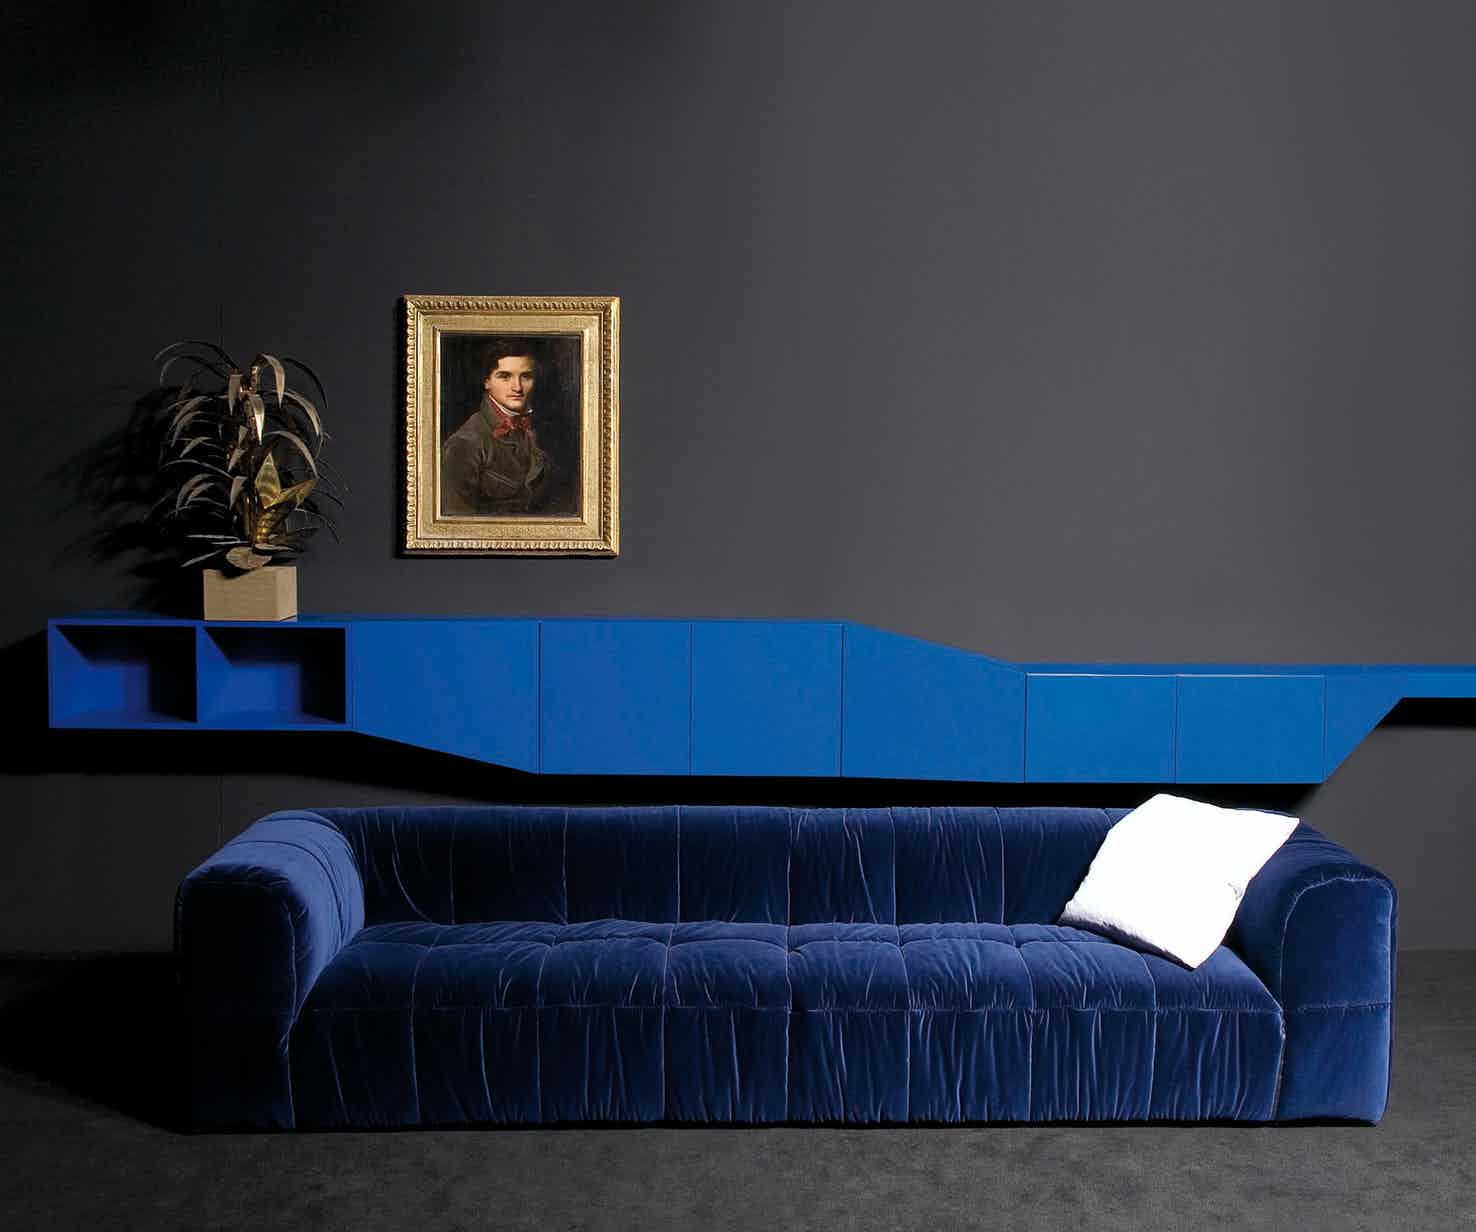 At the end of the 60s, the architect Cini Boeri revolutionized the furniture sector with a piece that is now a classic: the Strips Modular Sofa.It has won the Compasso d'Oro award and is exhibited in various museums around the world.